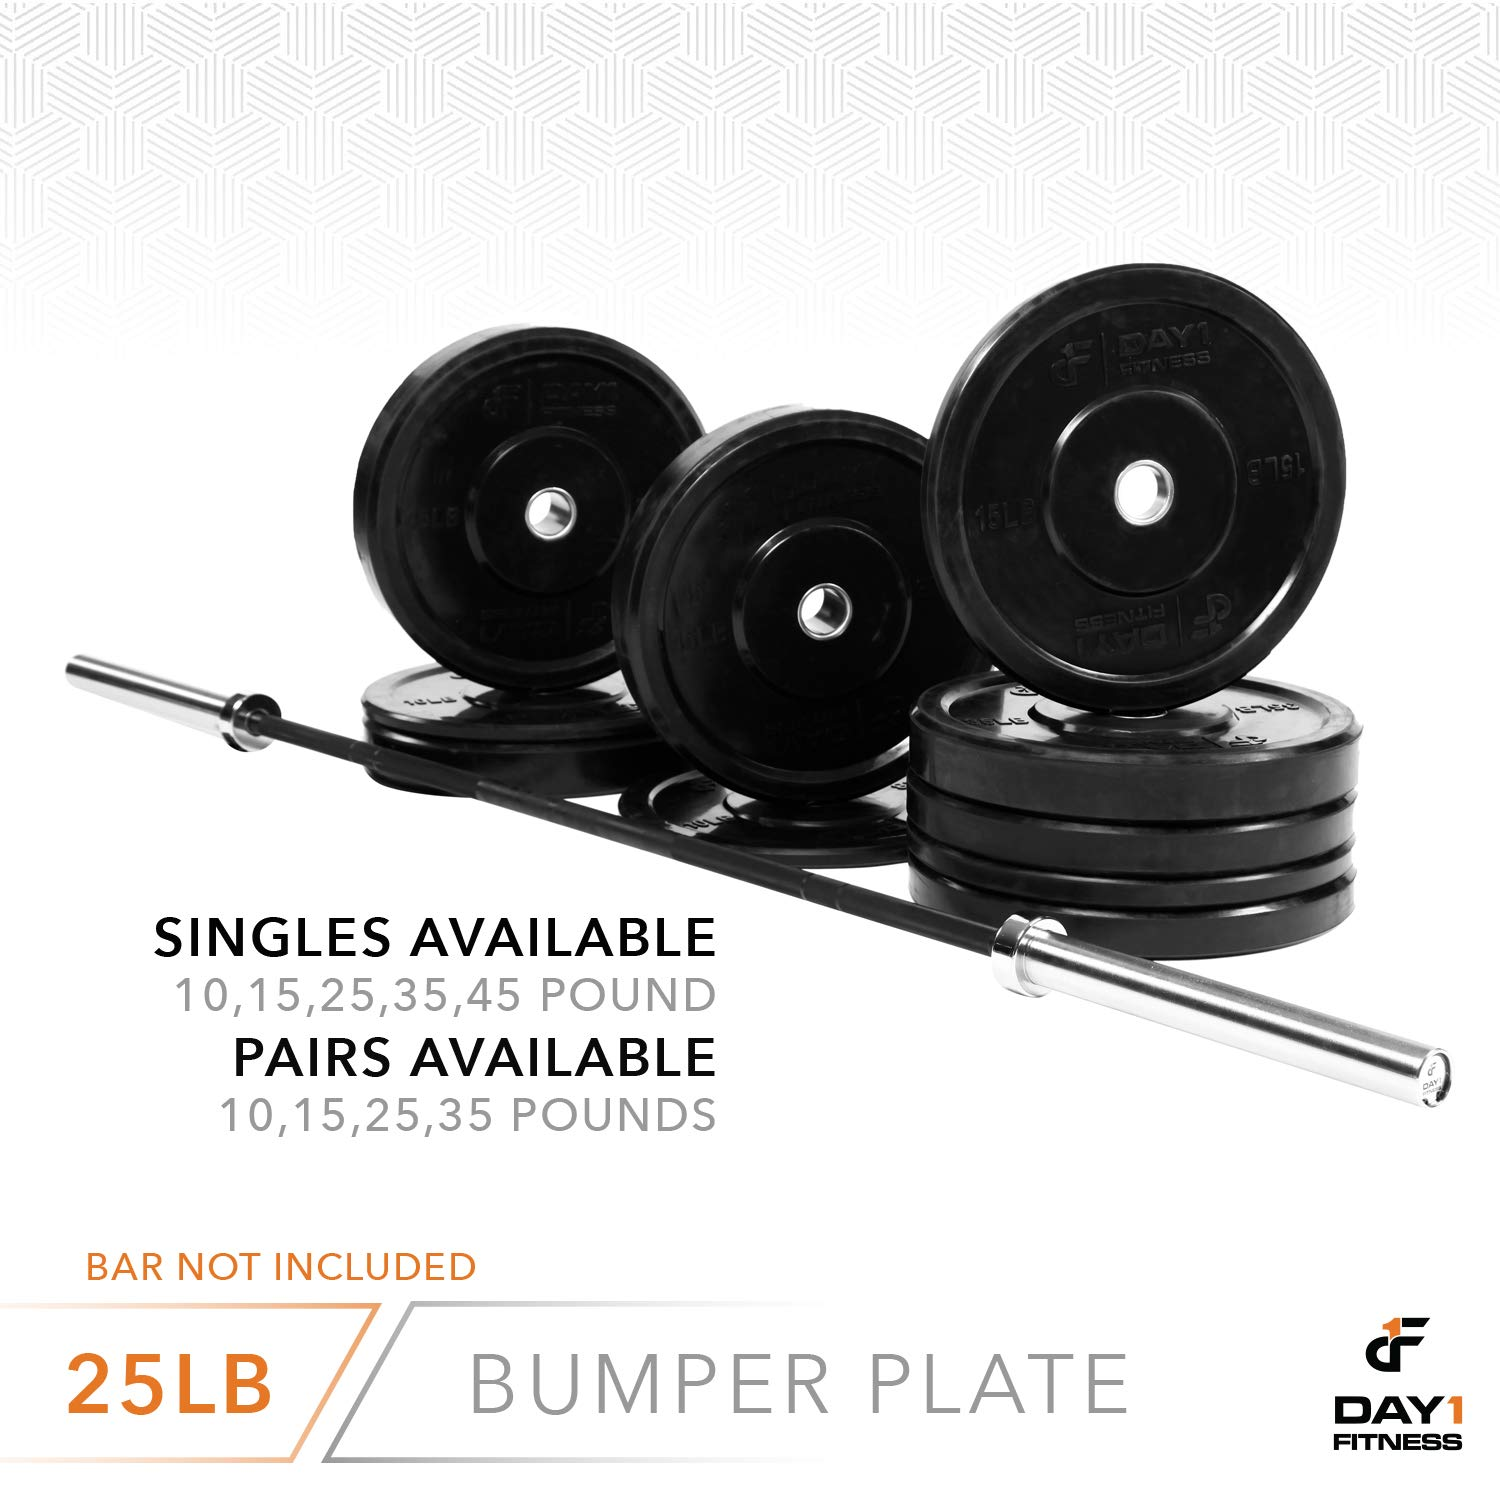 "Day 1 Fitness Olympic Bumper Weighted Plate 2"" for Barbells, Bars – 25 lb Single Plate - Shock-Absorbing, Minimal Bounce Steel Weights with Bumpers for Lifting, Strength Training, and Working Out by Day 1 Fitness (Image #6)"